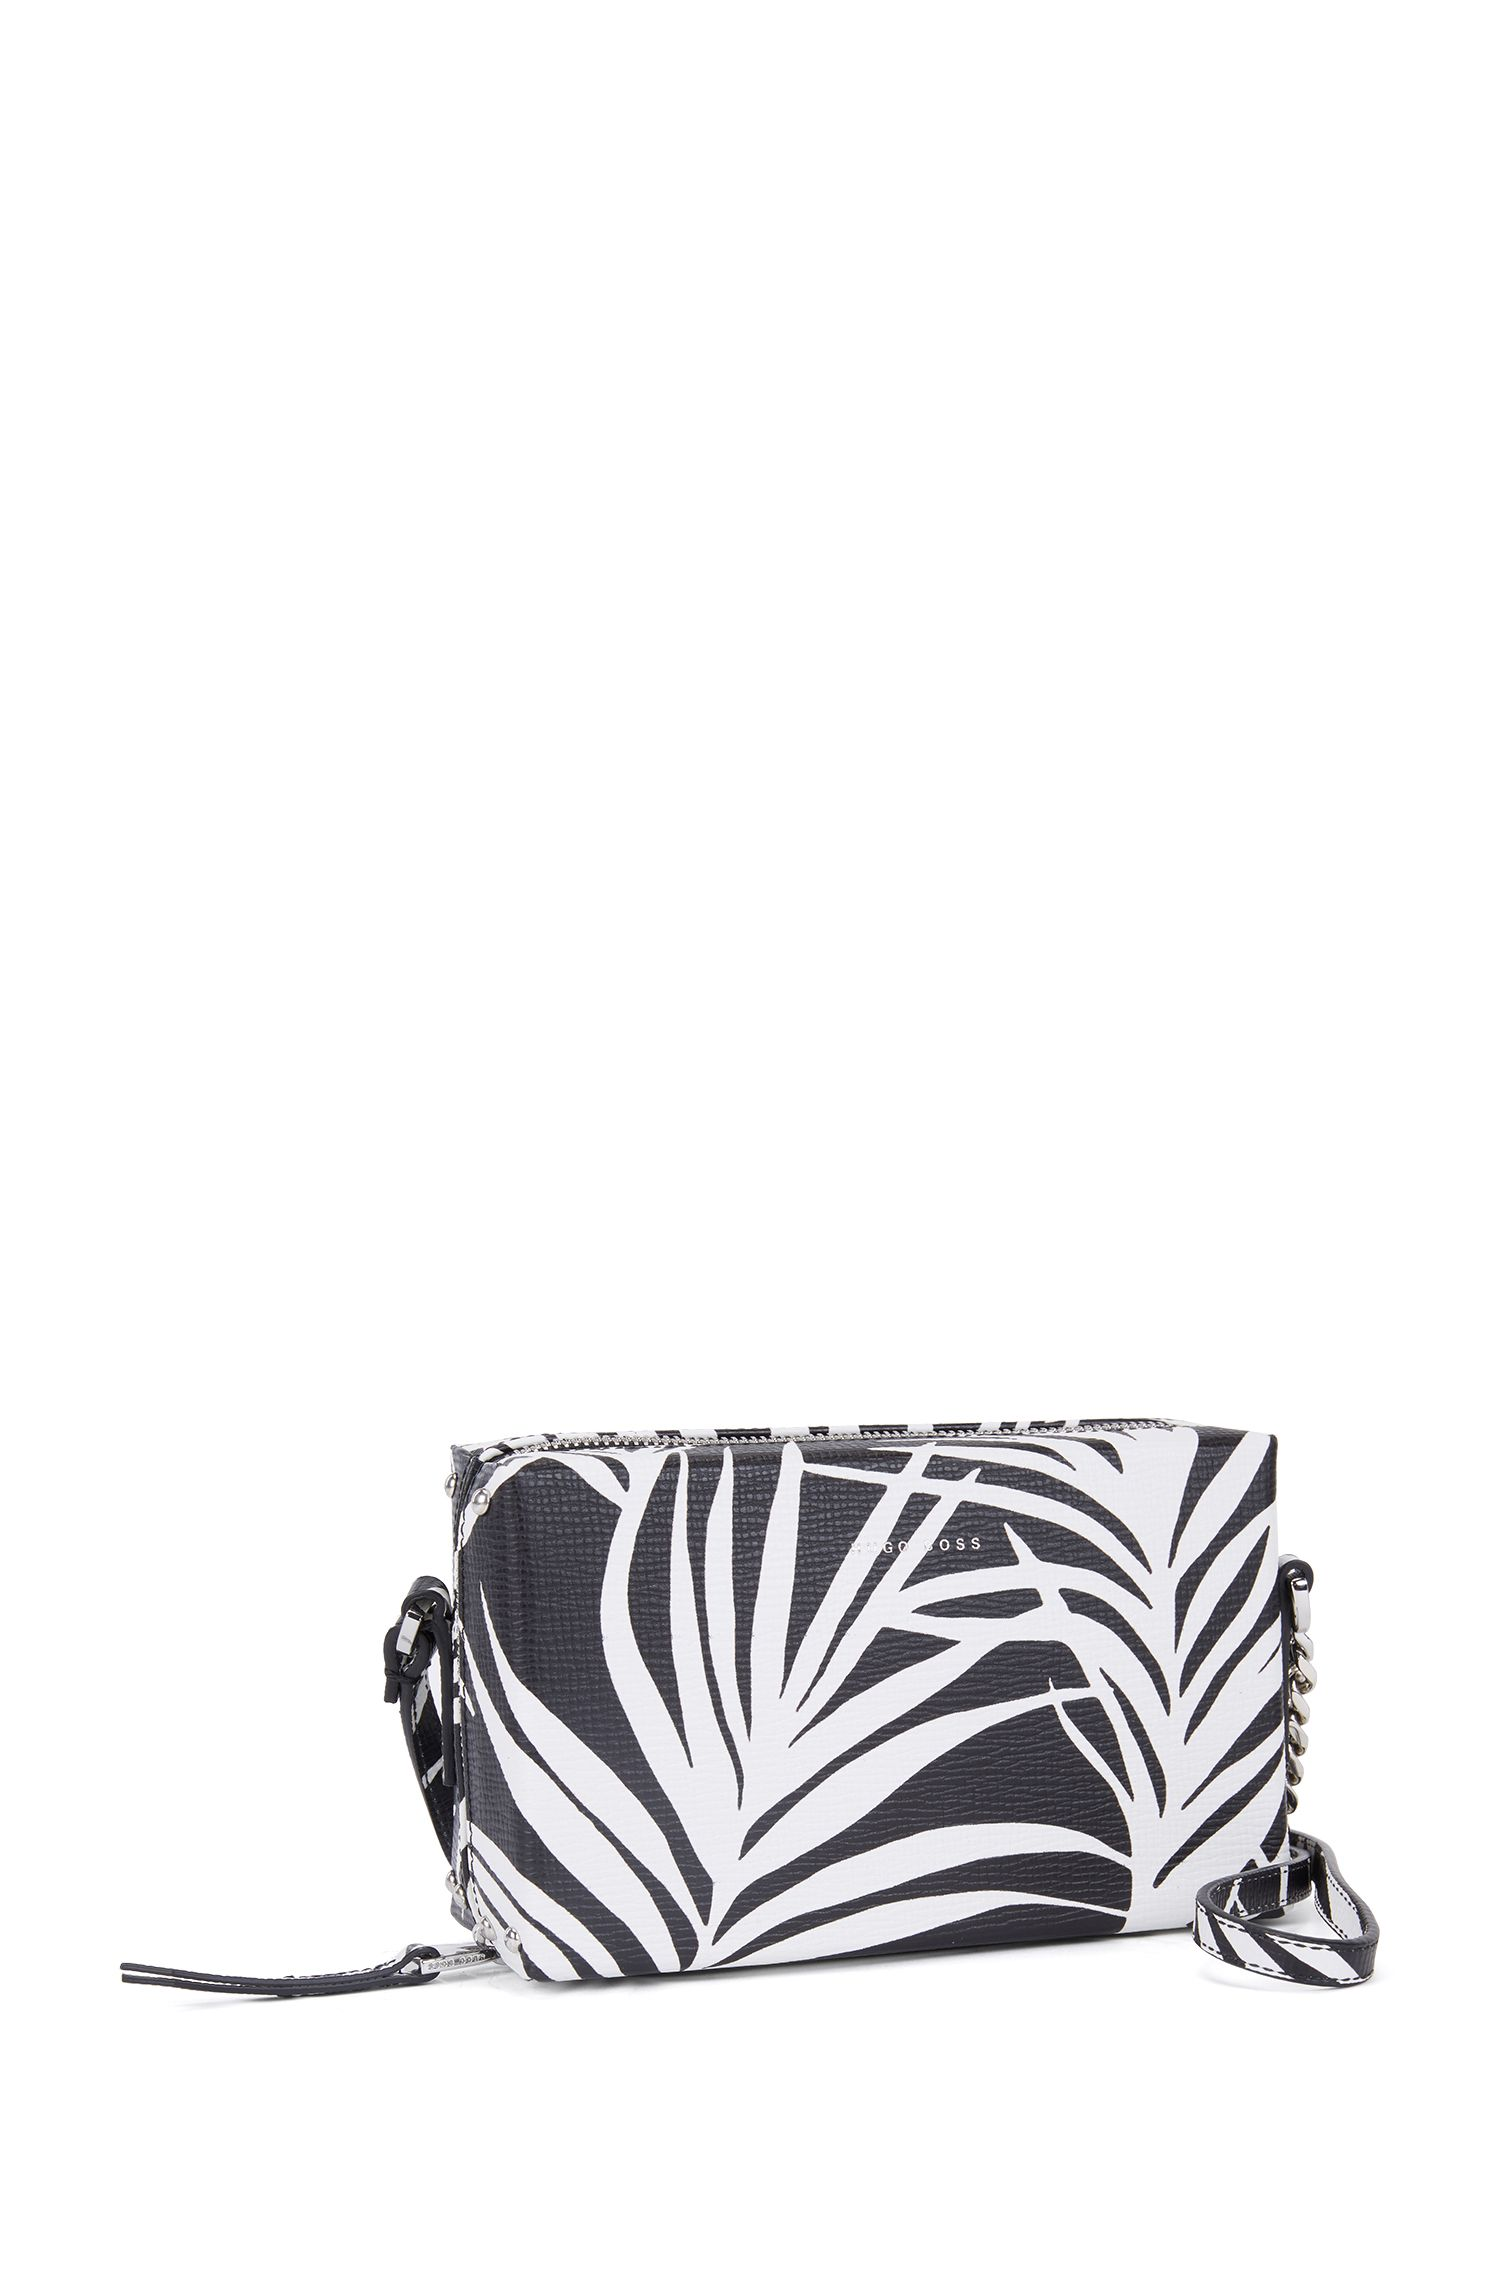 Patterned cross-body bag in Italian calf leather